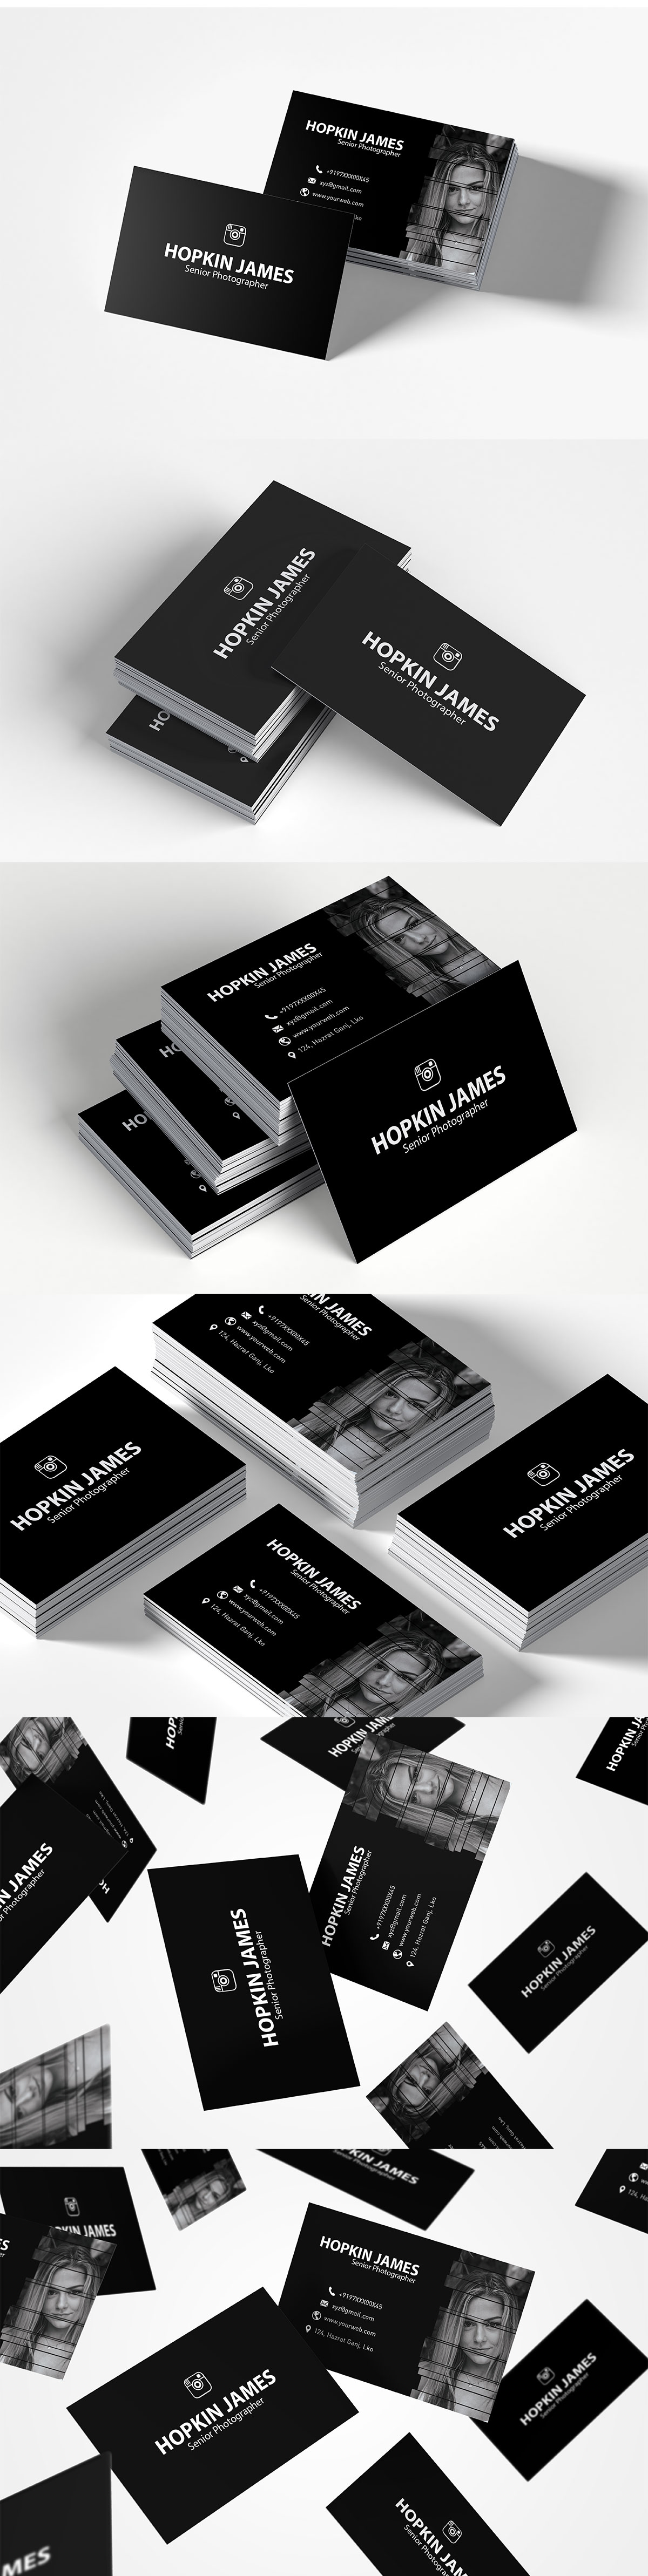 Free #Corporate Photography #Business #Card Template is an eye-catching photography business card template.